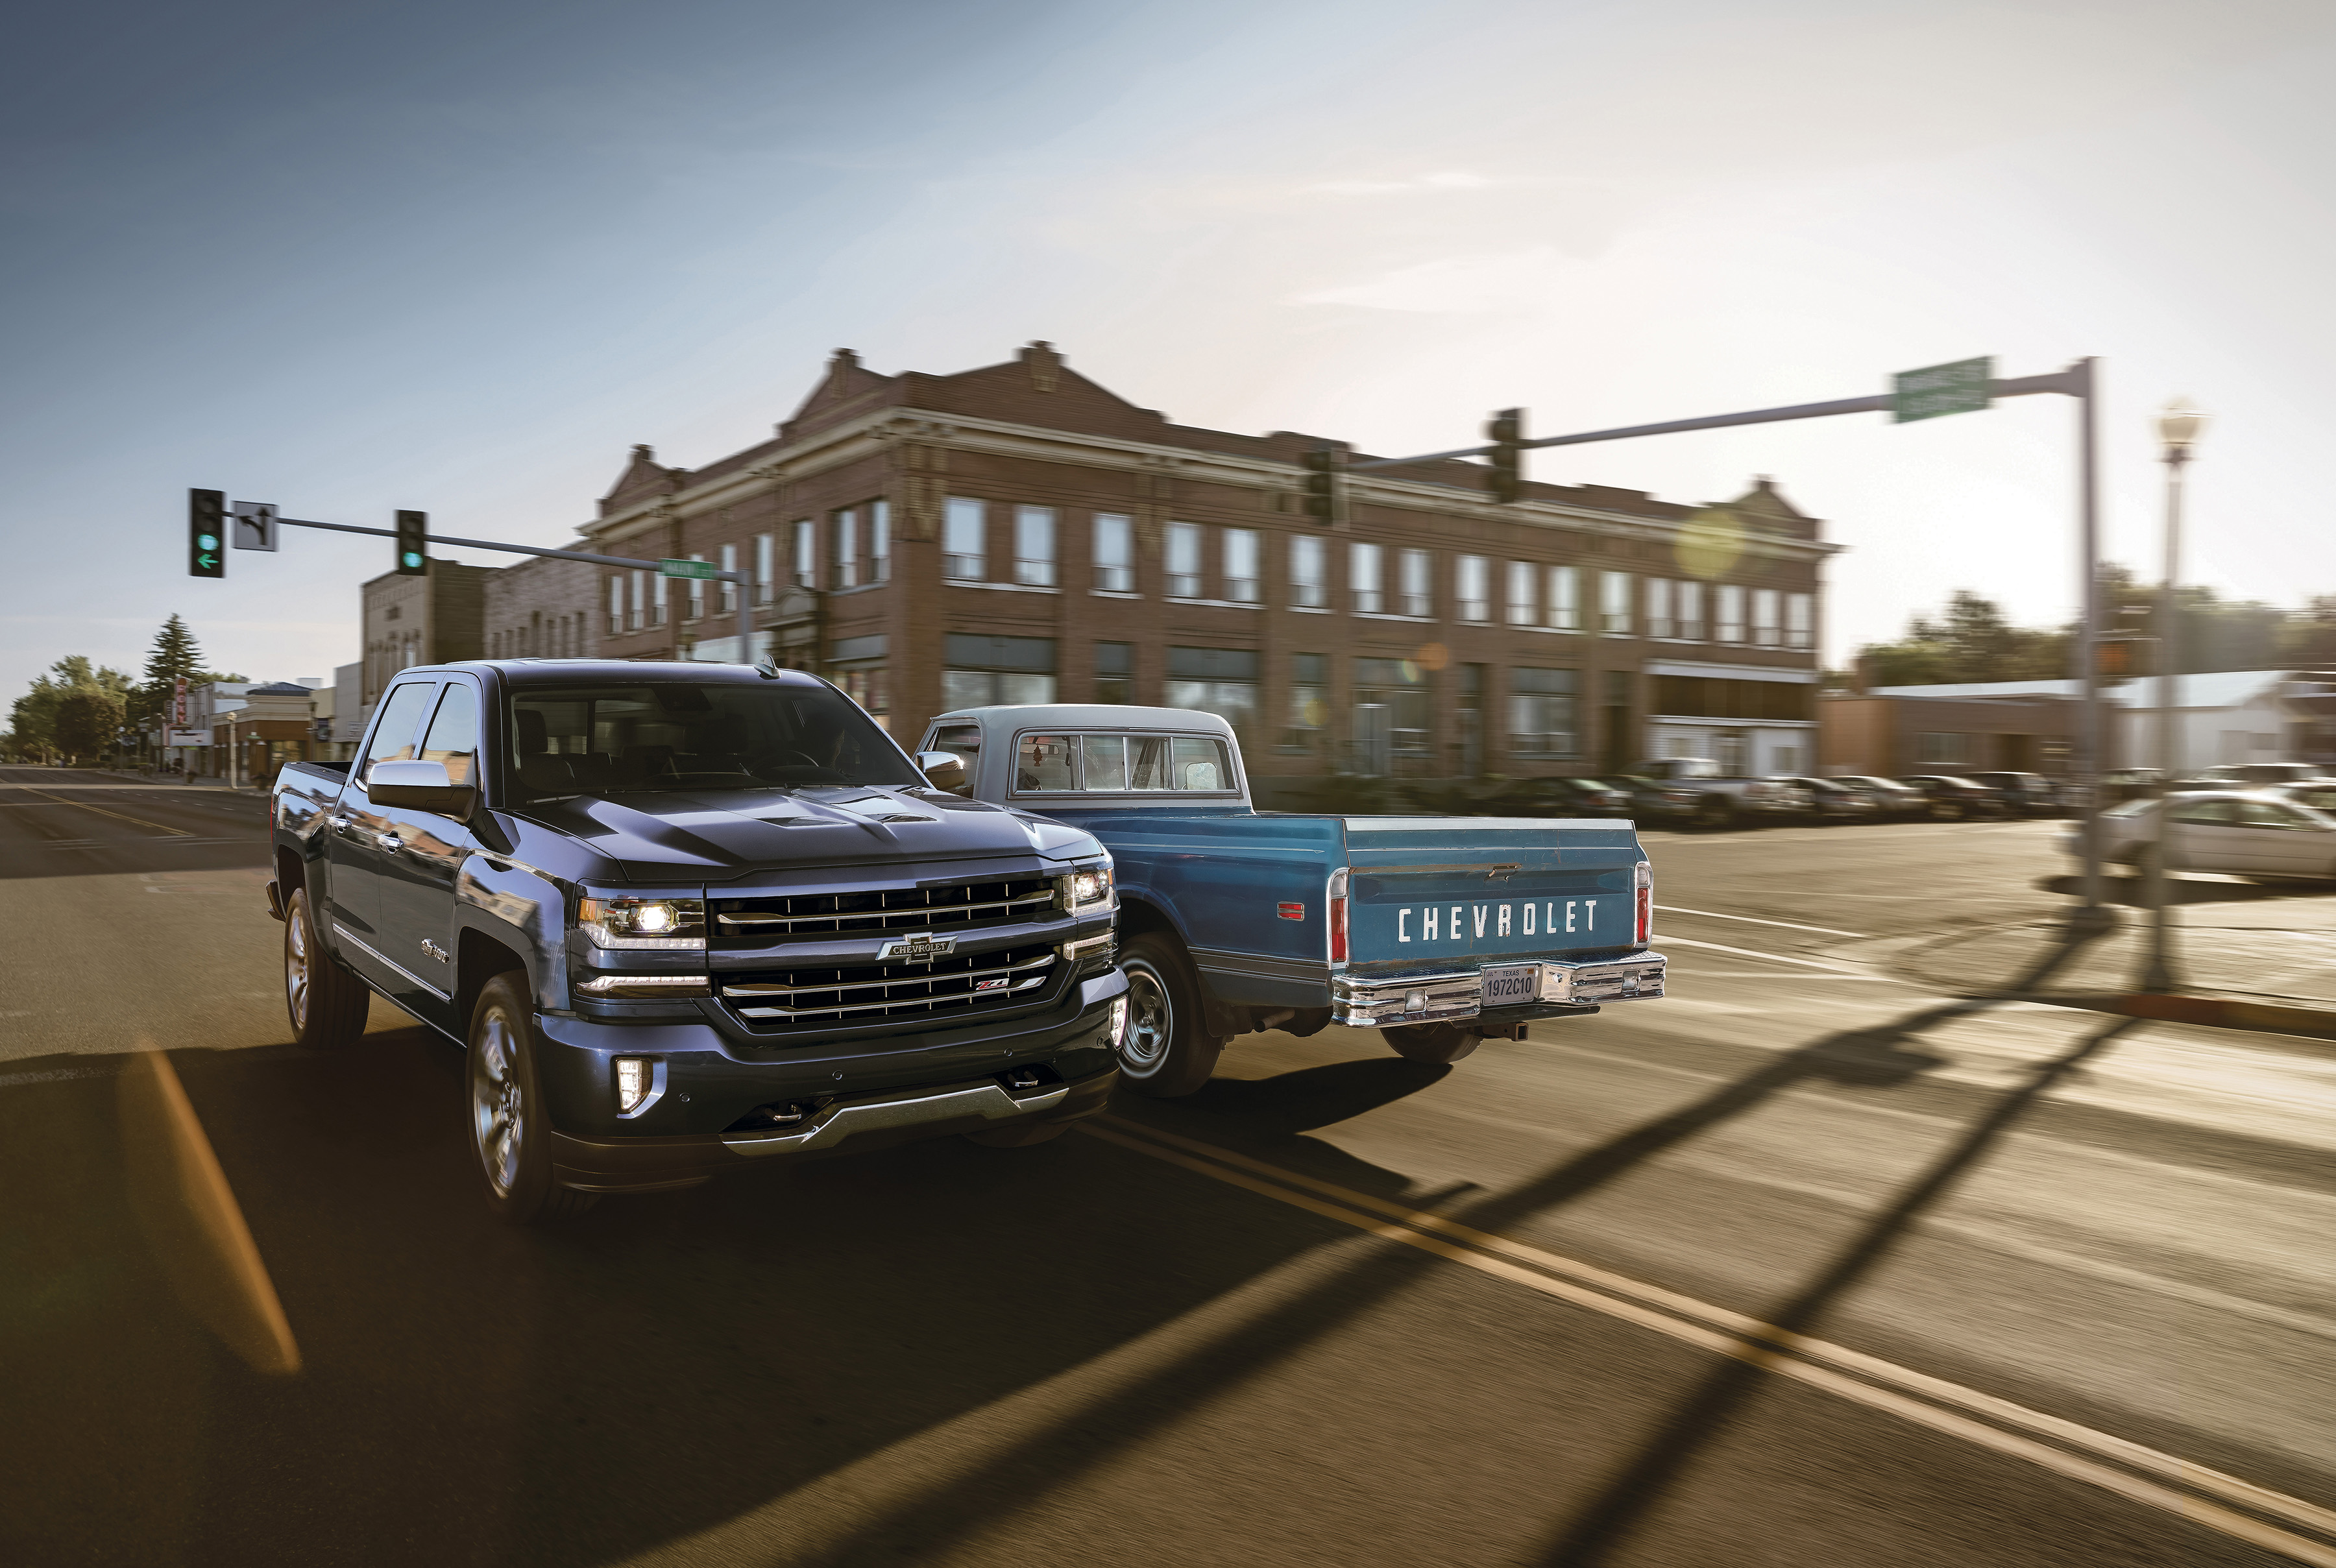 Chevy Honors Truck Centennial with 100 Day Celebration